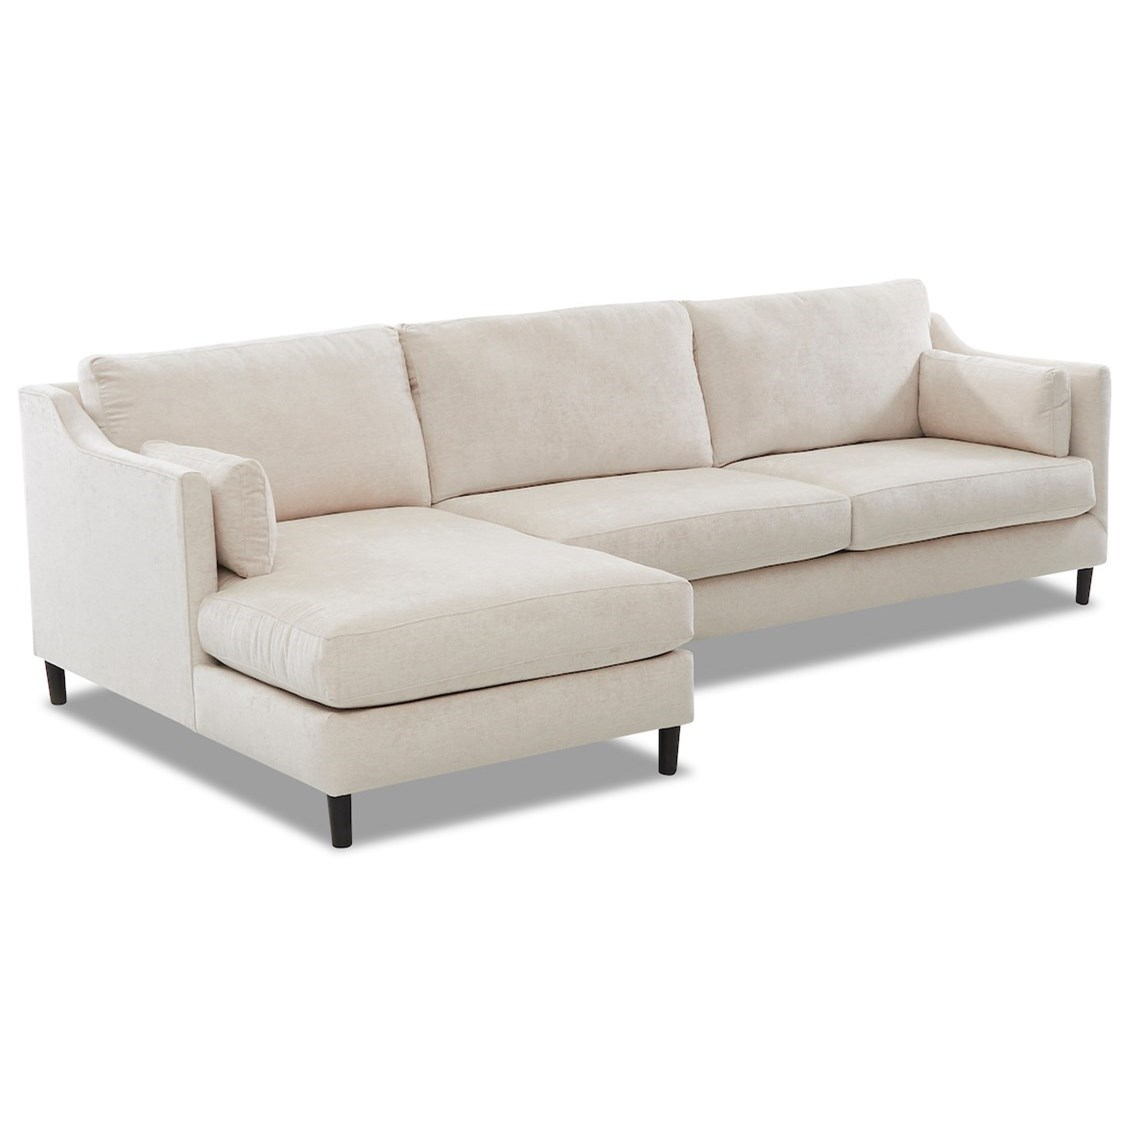 Harlow 3-Seat Modular Chaise Sofa w/ LAF Chaise by Klaussner at Johnny Janosik